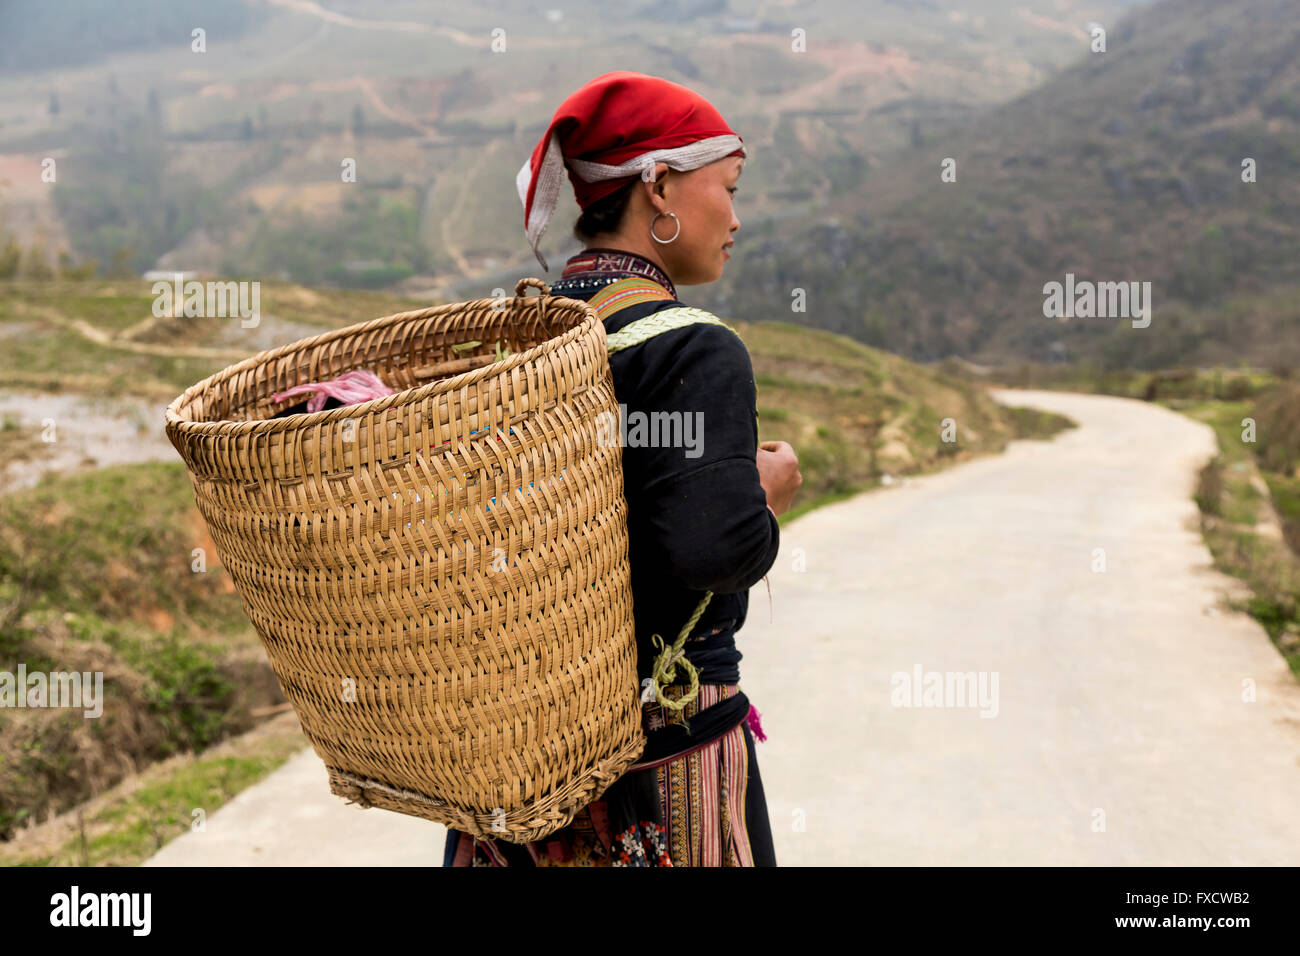 An ethnic minority woman carrying a basket in SaPa Vietnam - Stock Image